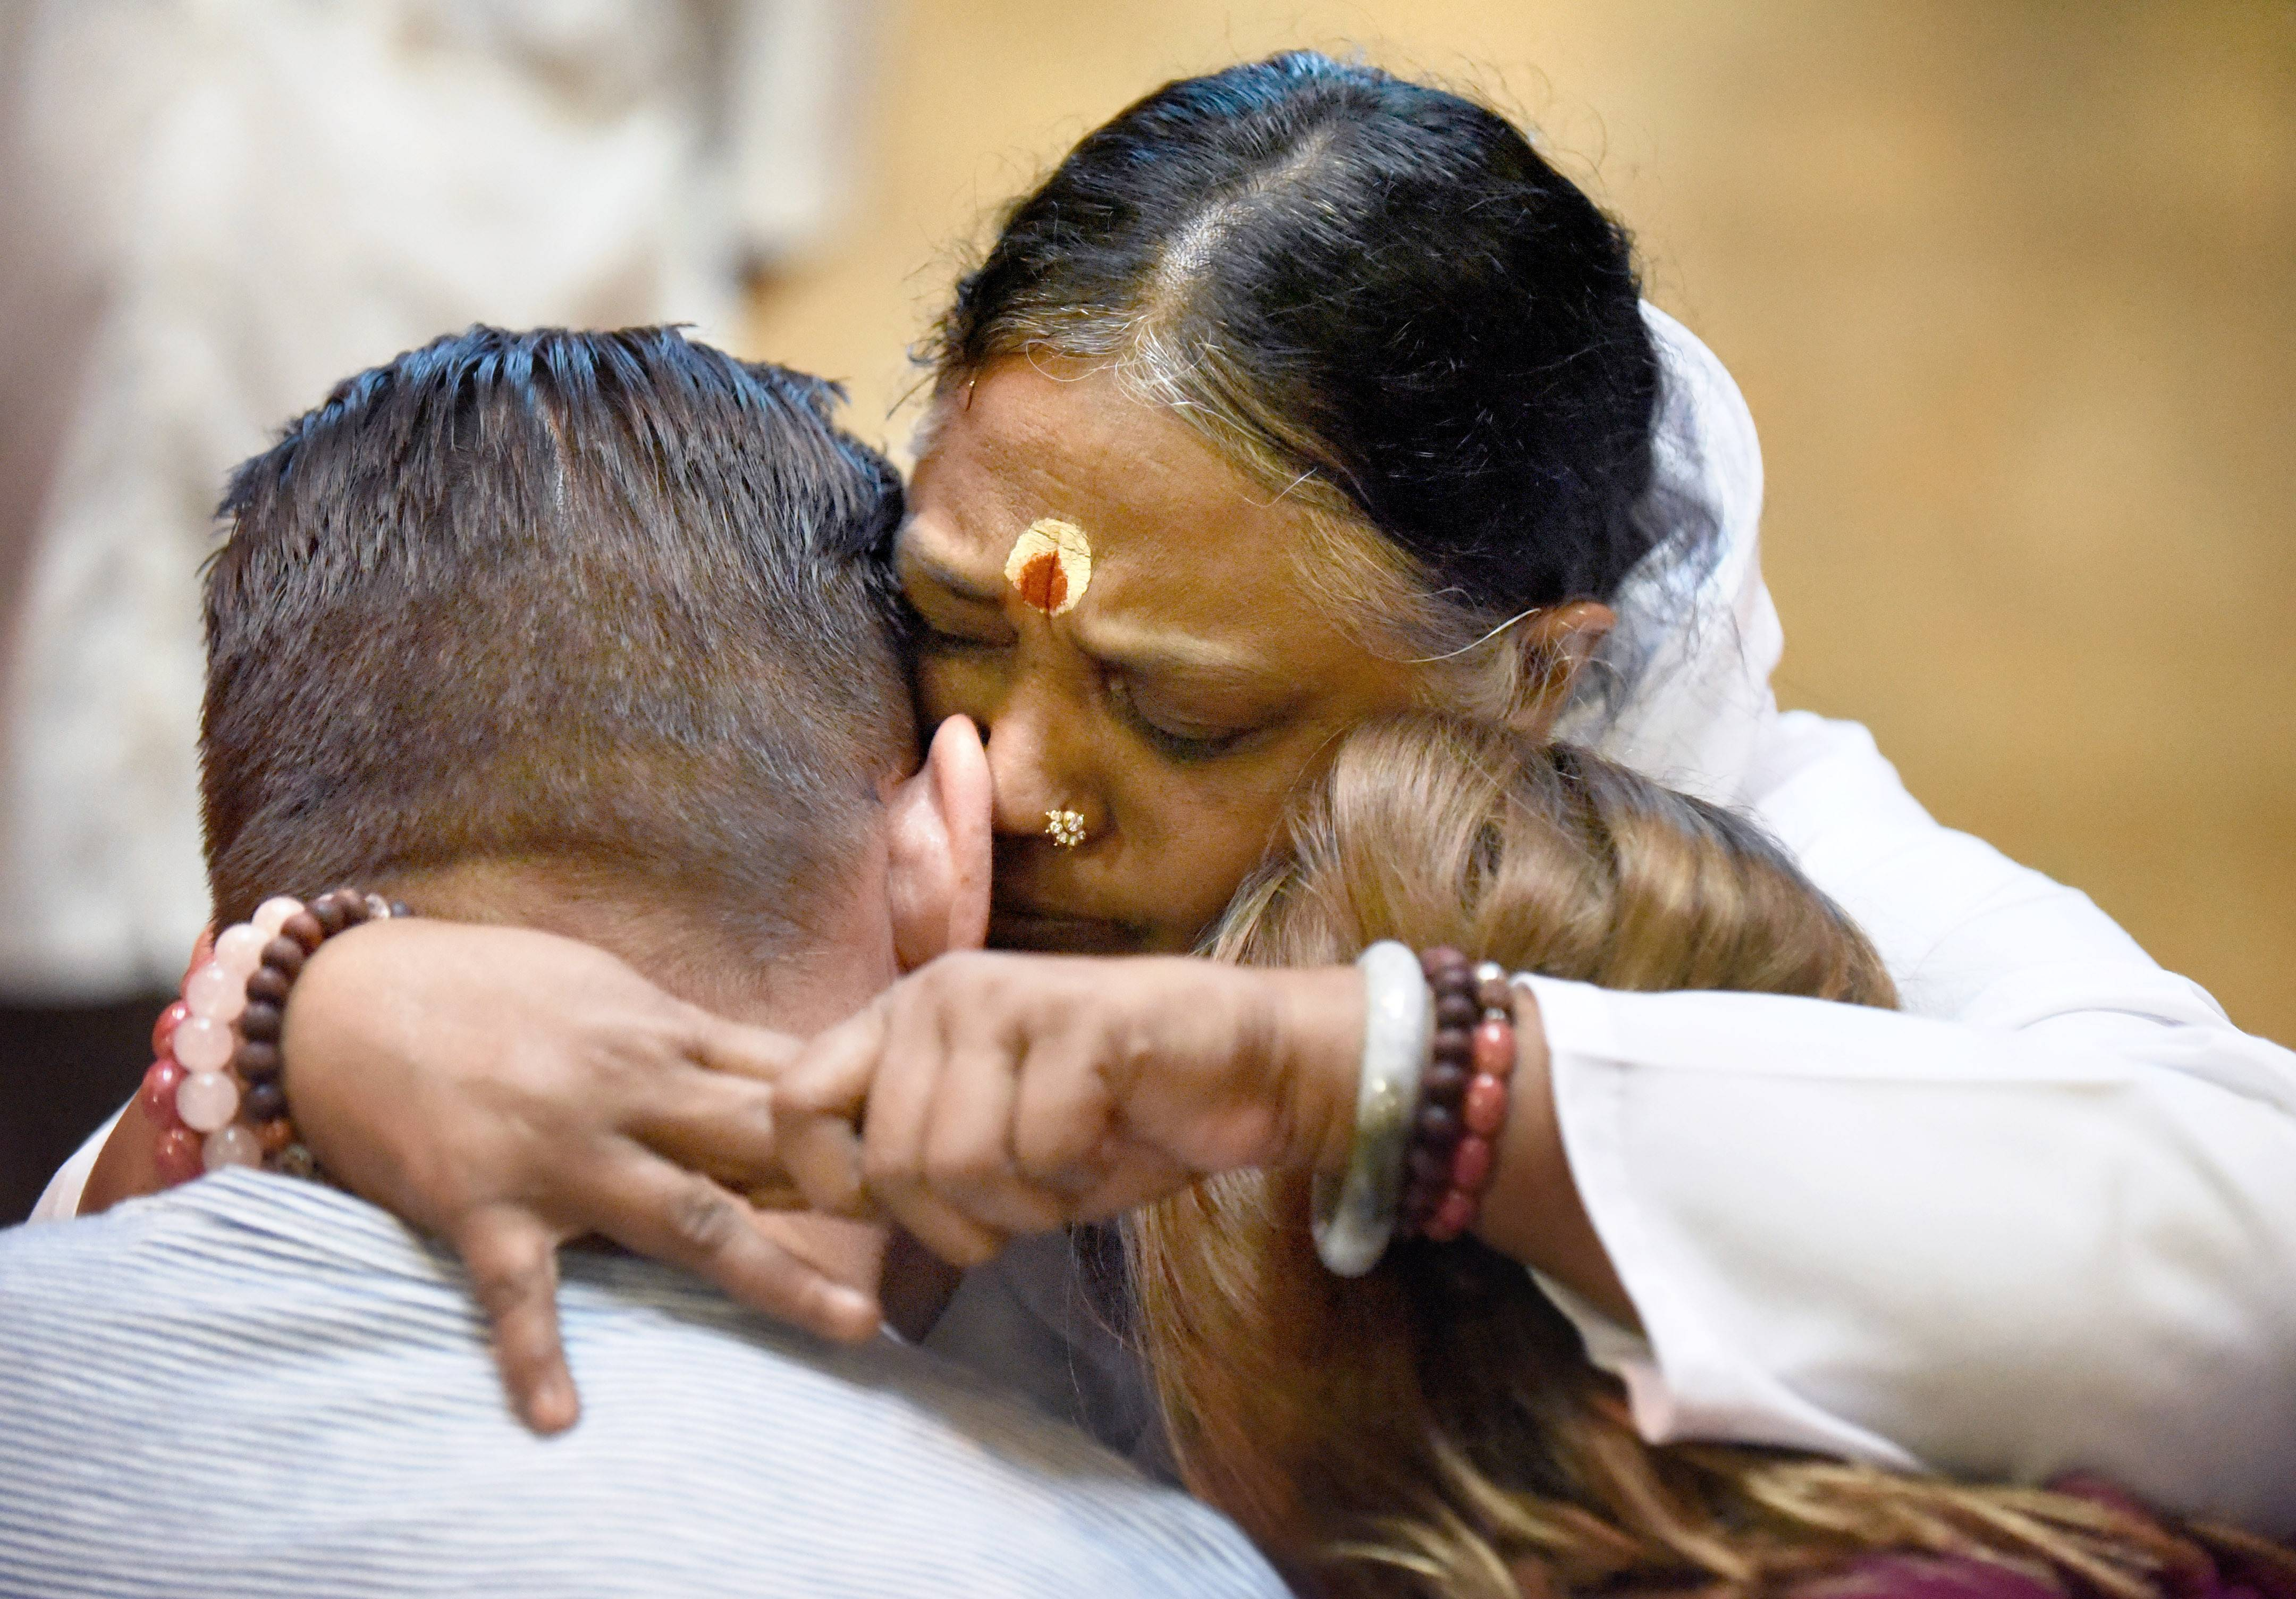 Mata Amritanandamayi, a humanitarian and spiritual leader from India who blesses people with hugs, embraces a couple at the M.A. Center near La Fox in a 2015 visit.